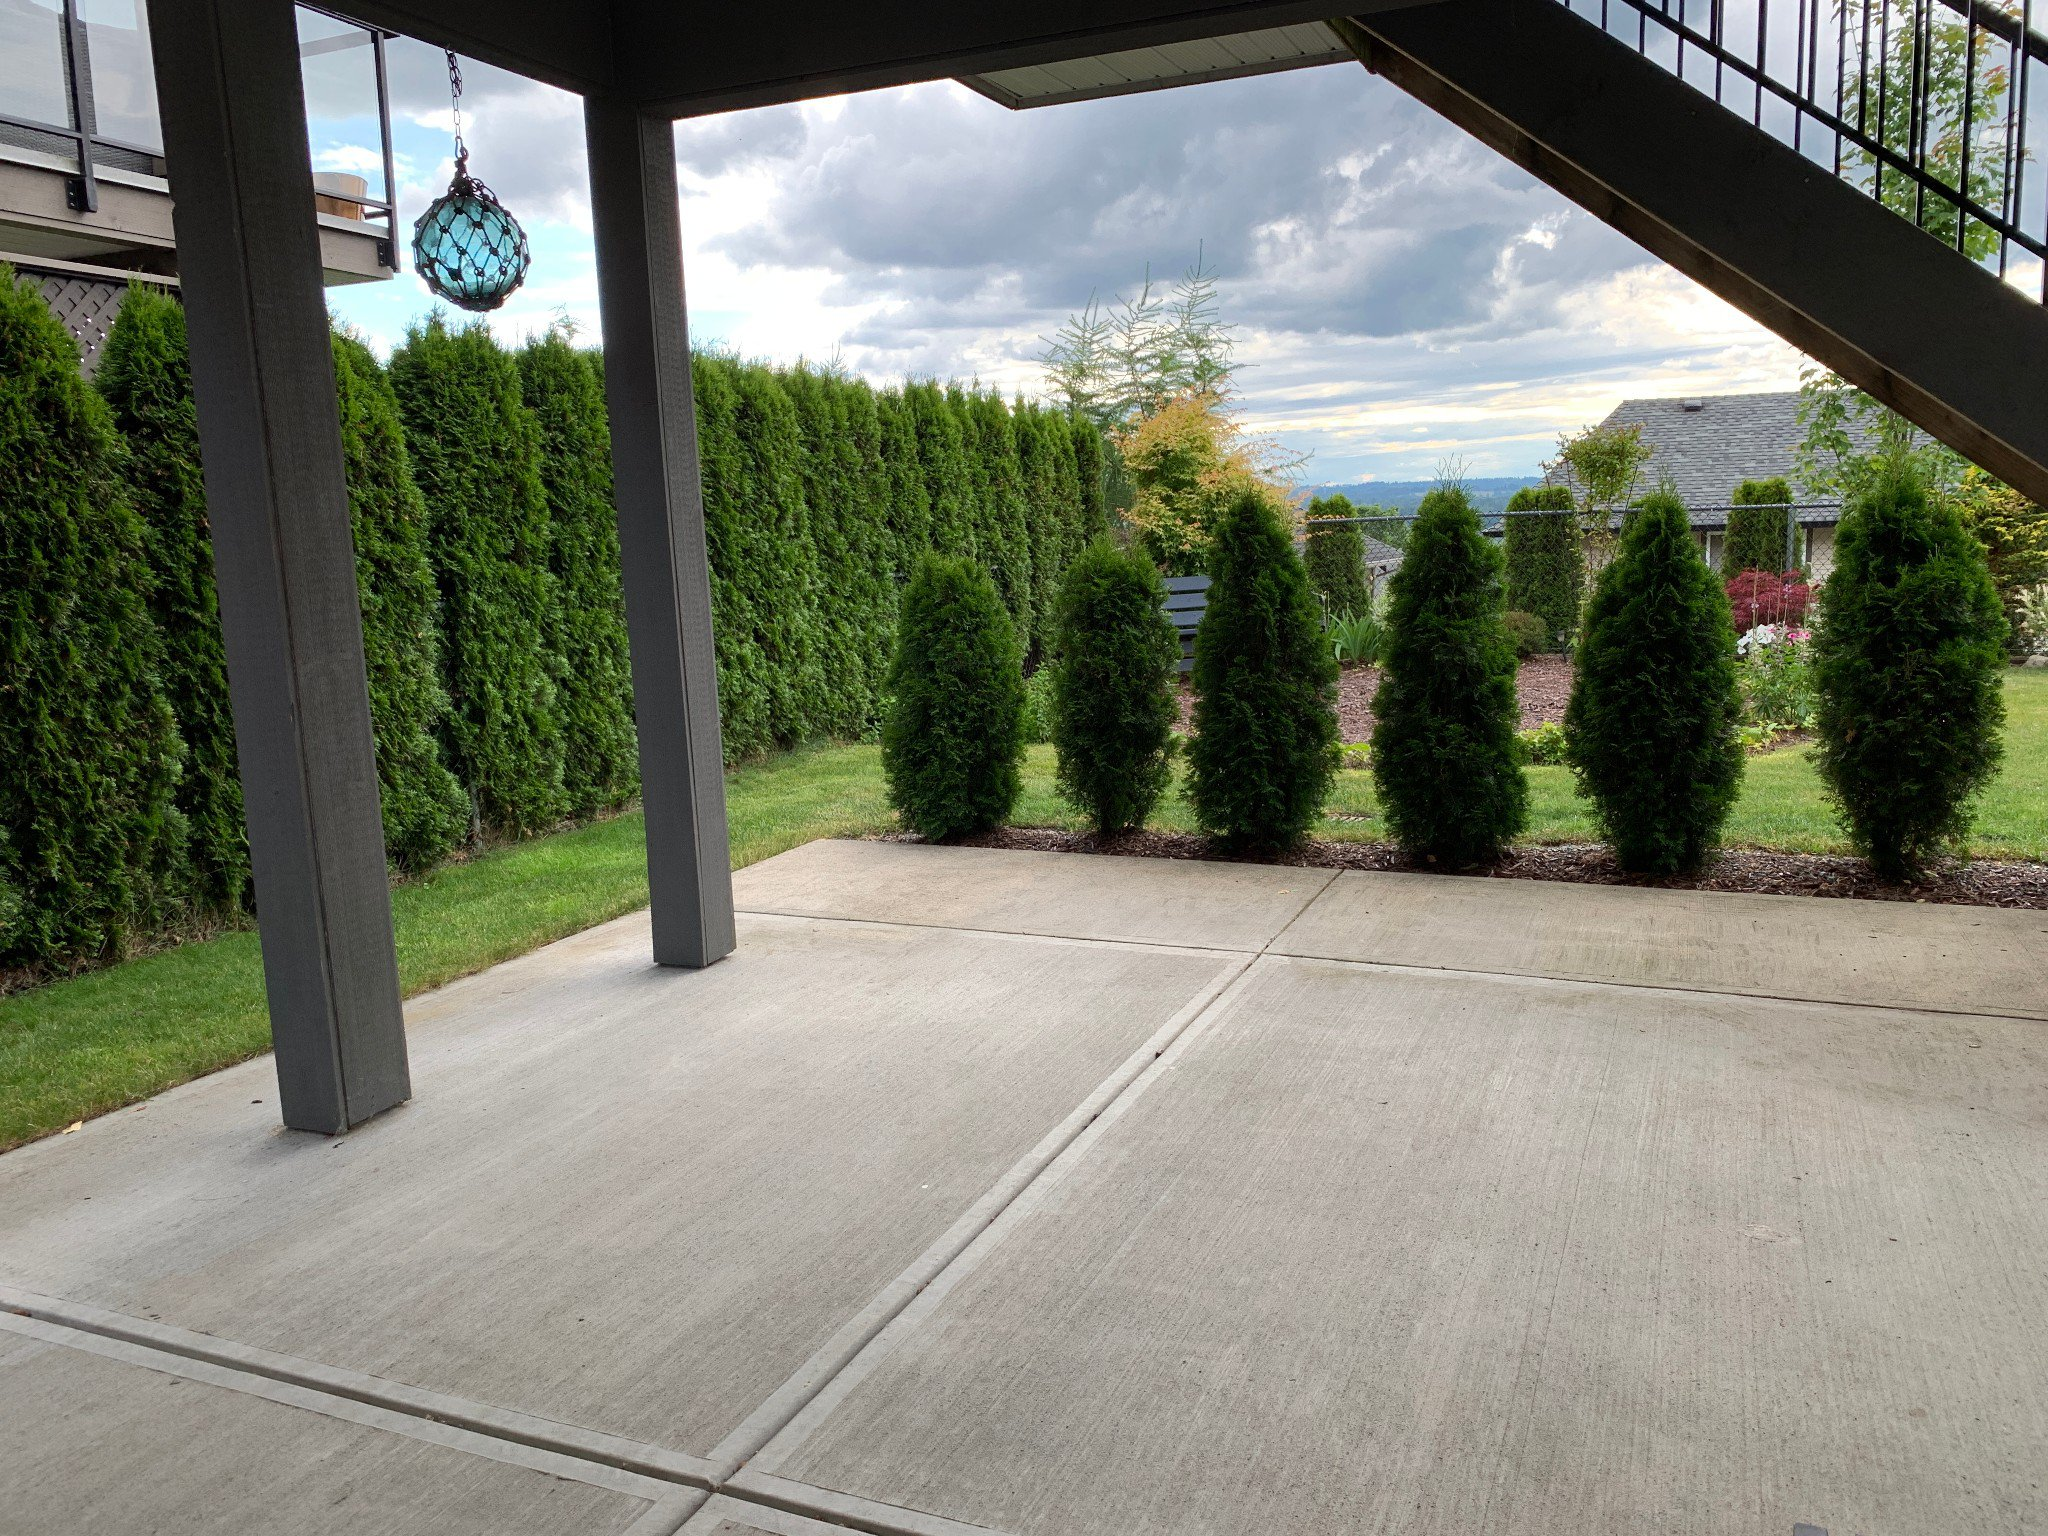 Photo 11: Photos: BSMT 3975 Caves Court in Abbotsford: Abbotsford East Condo for rent